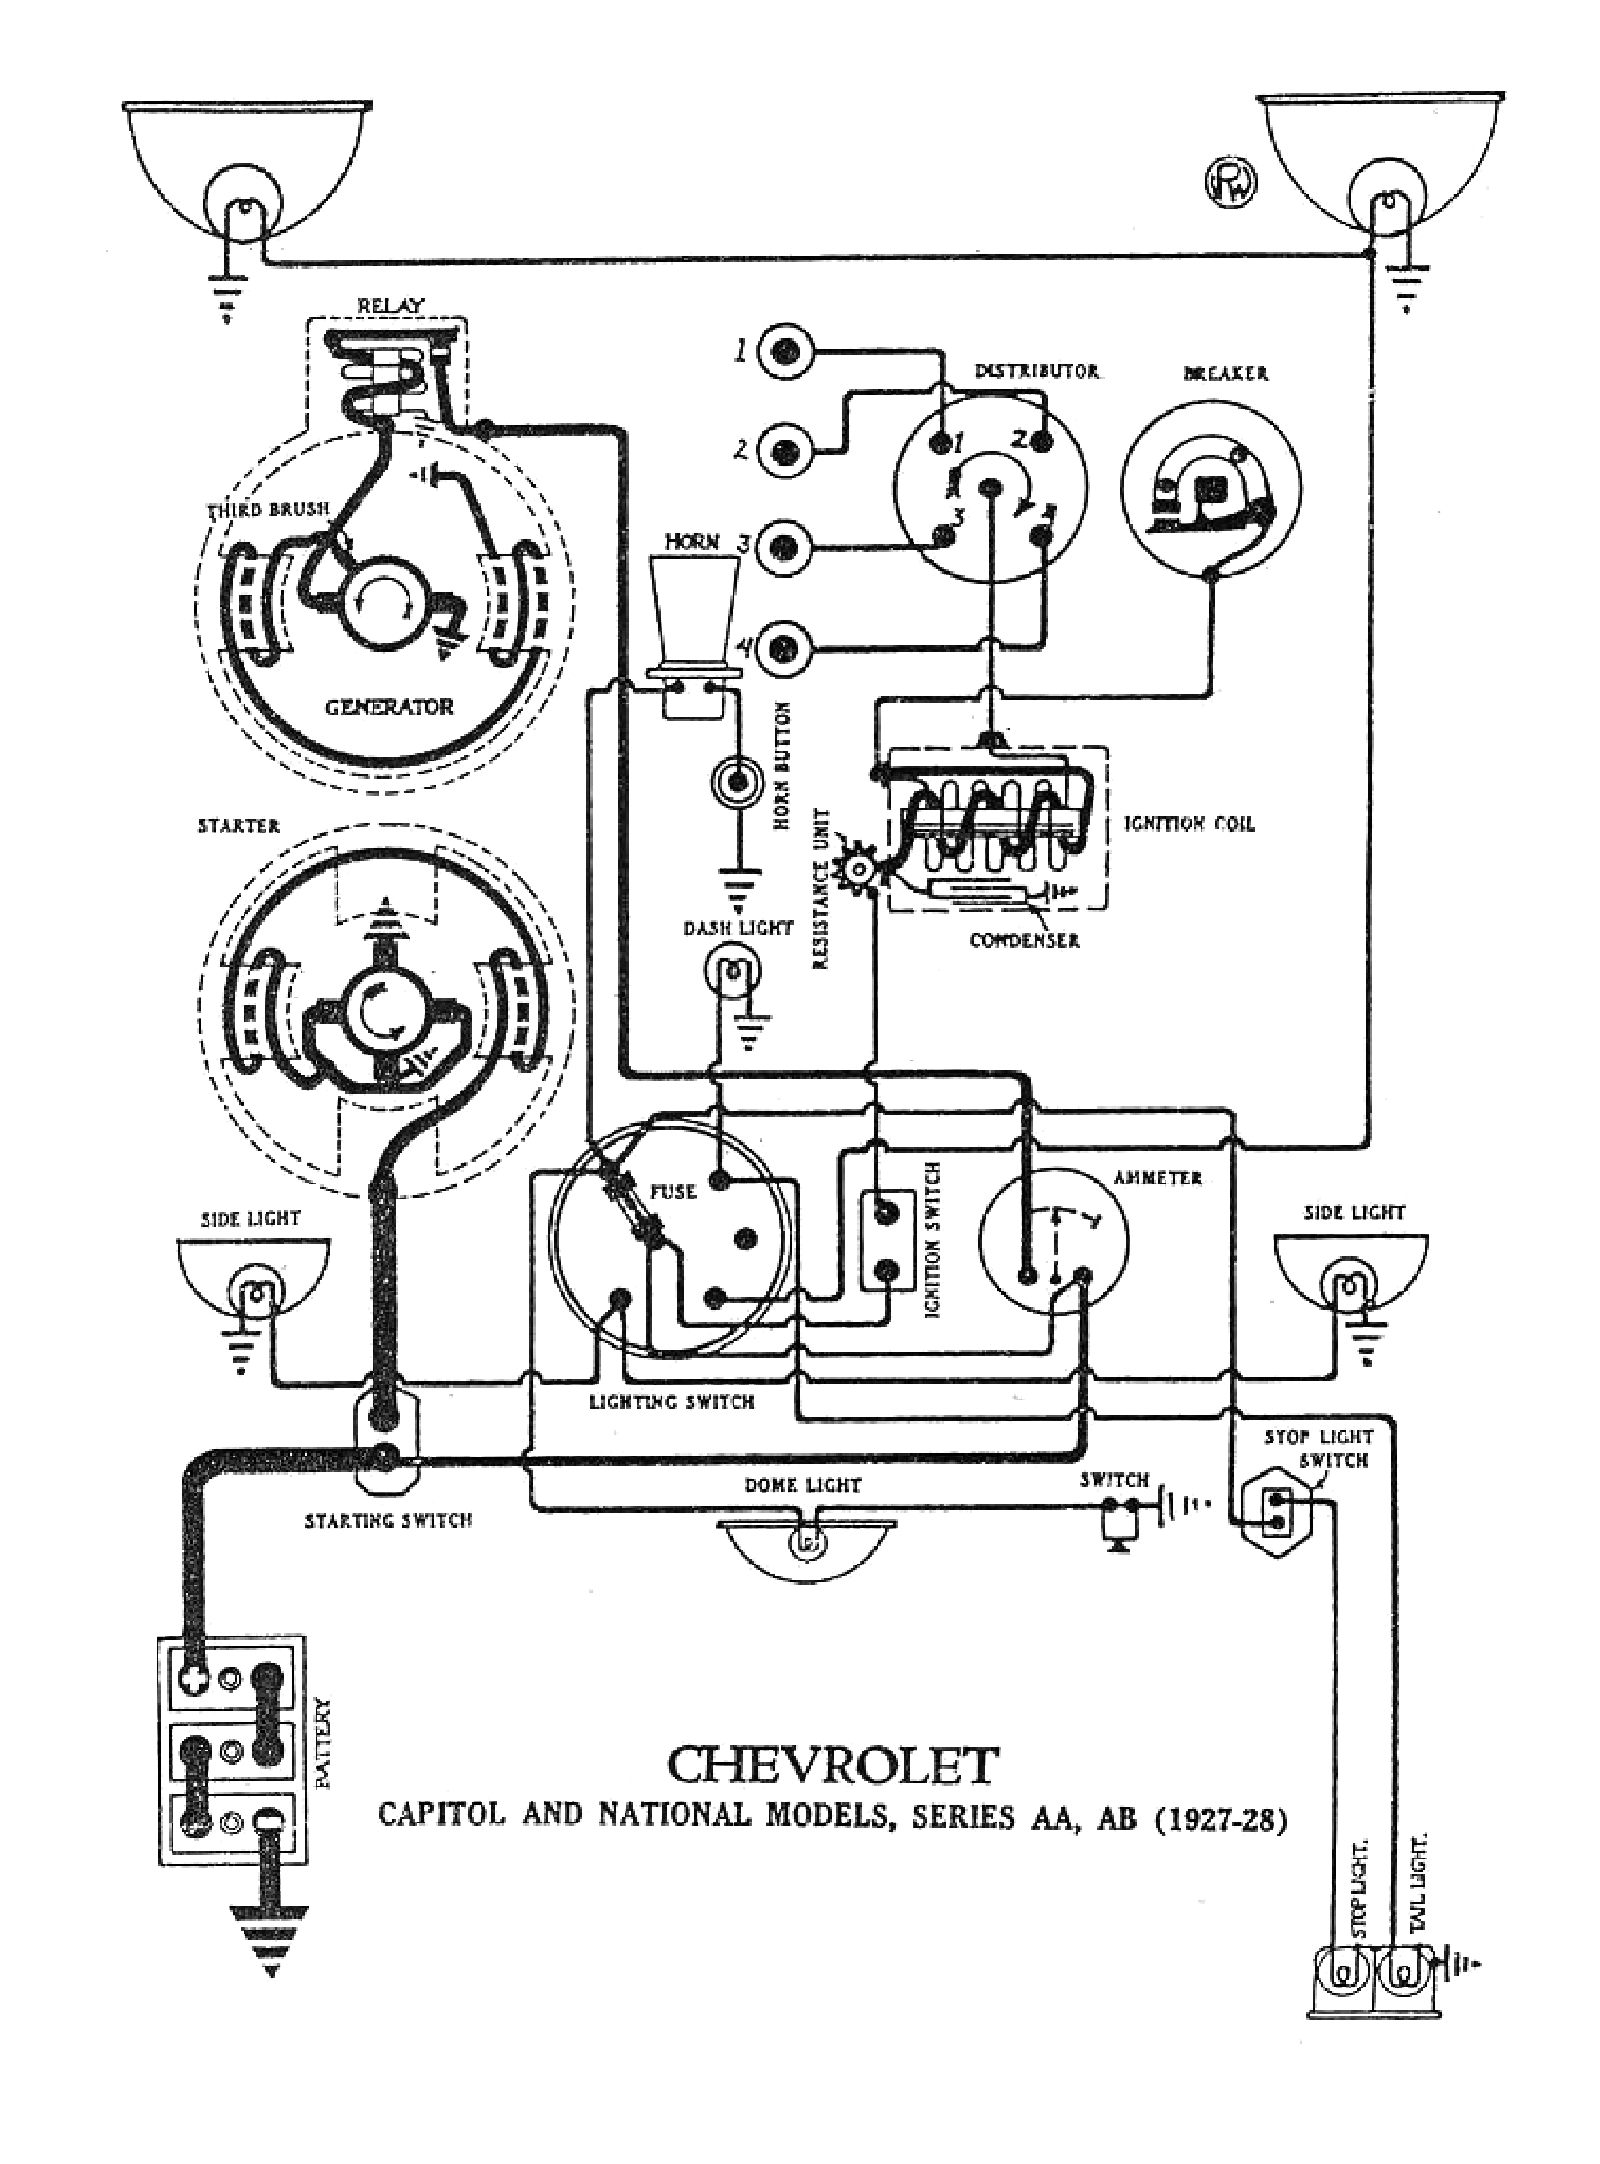 chevy wiring diagrams rh chevy oldcarmanualproject com 1957 Chevy Truck Wiring Diagram 1957 Chevy Truck Wiring Diagram